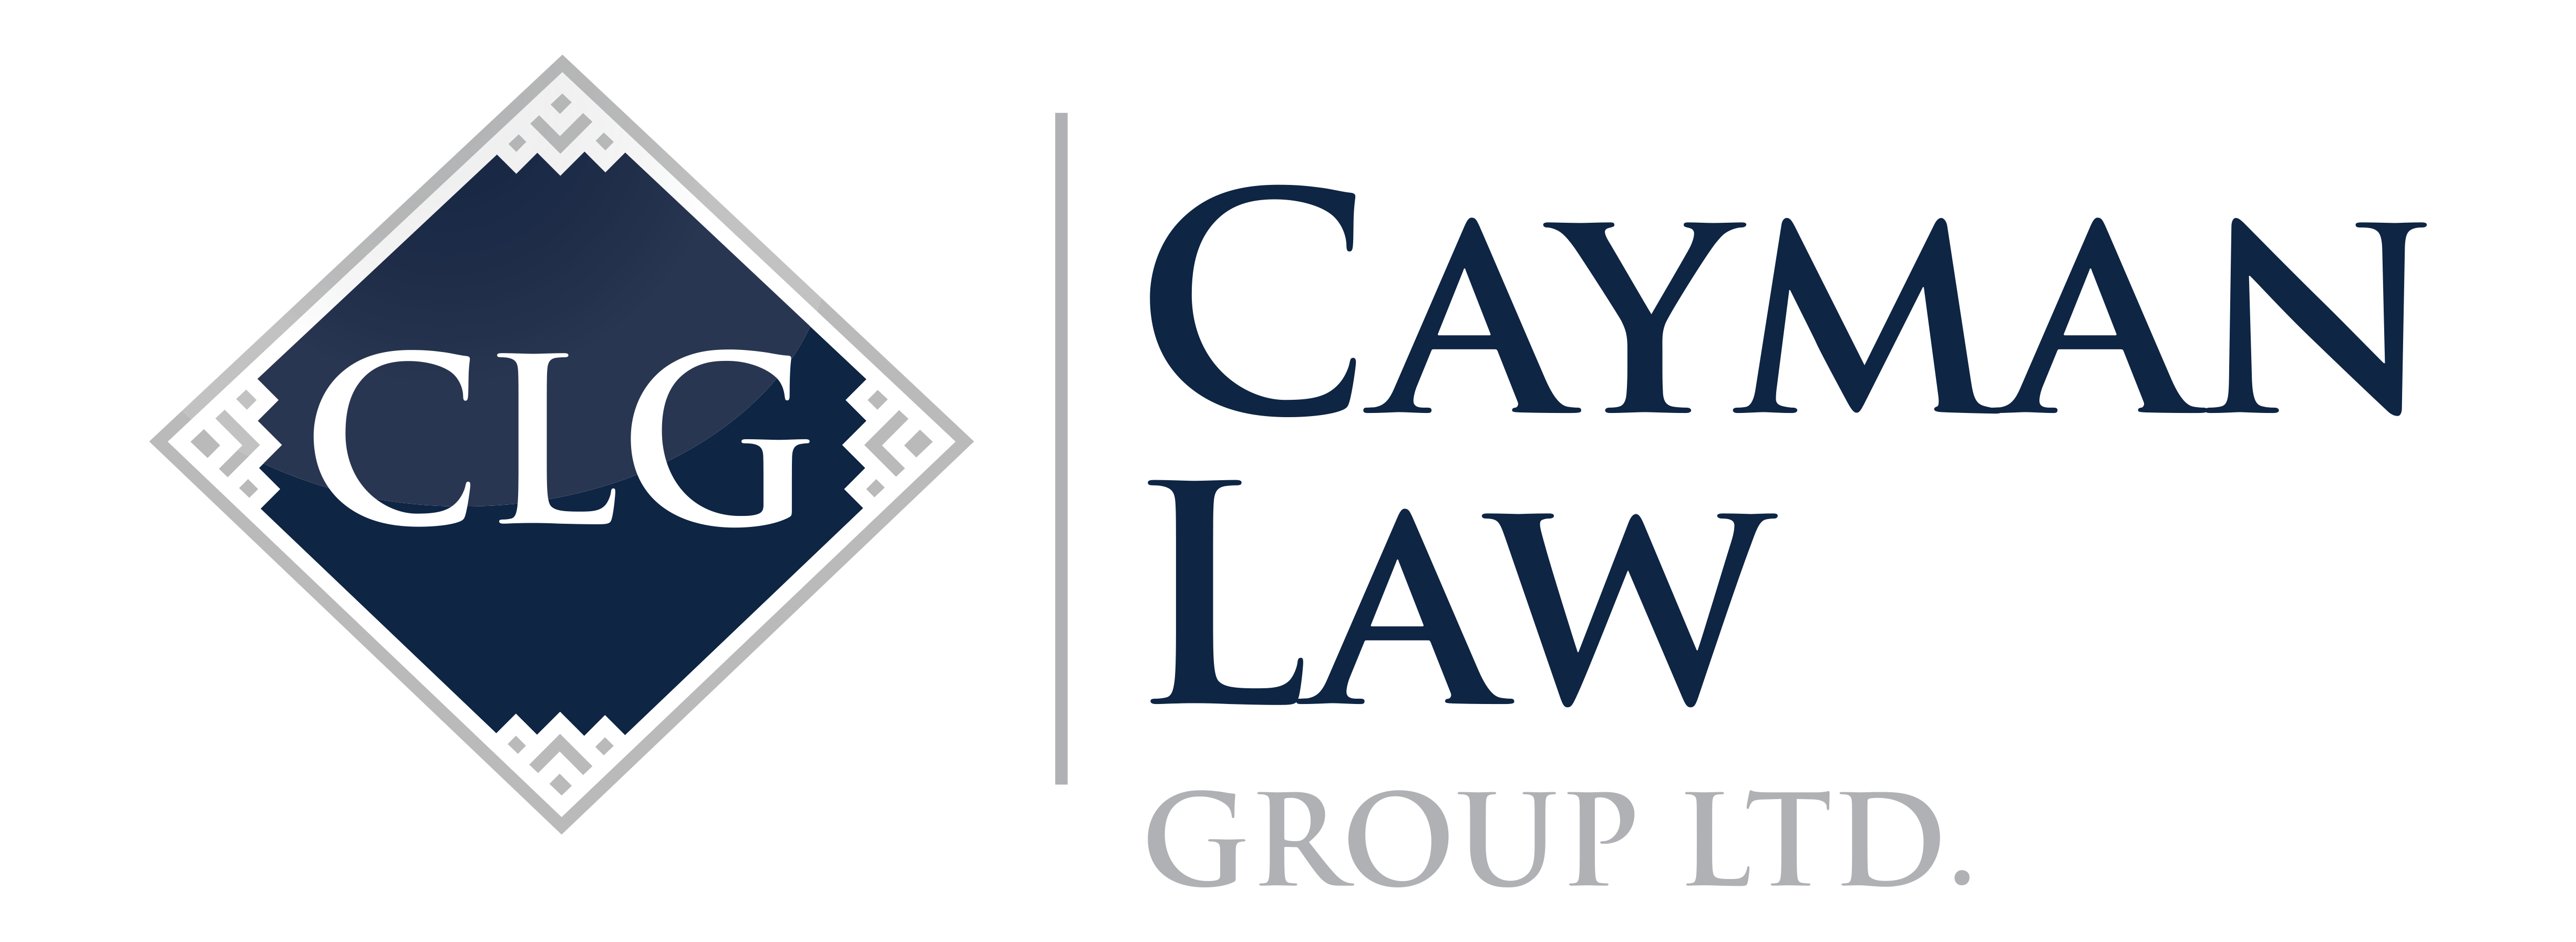 Cayman Law Group